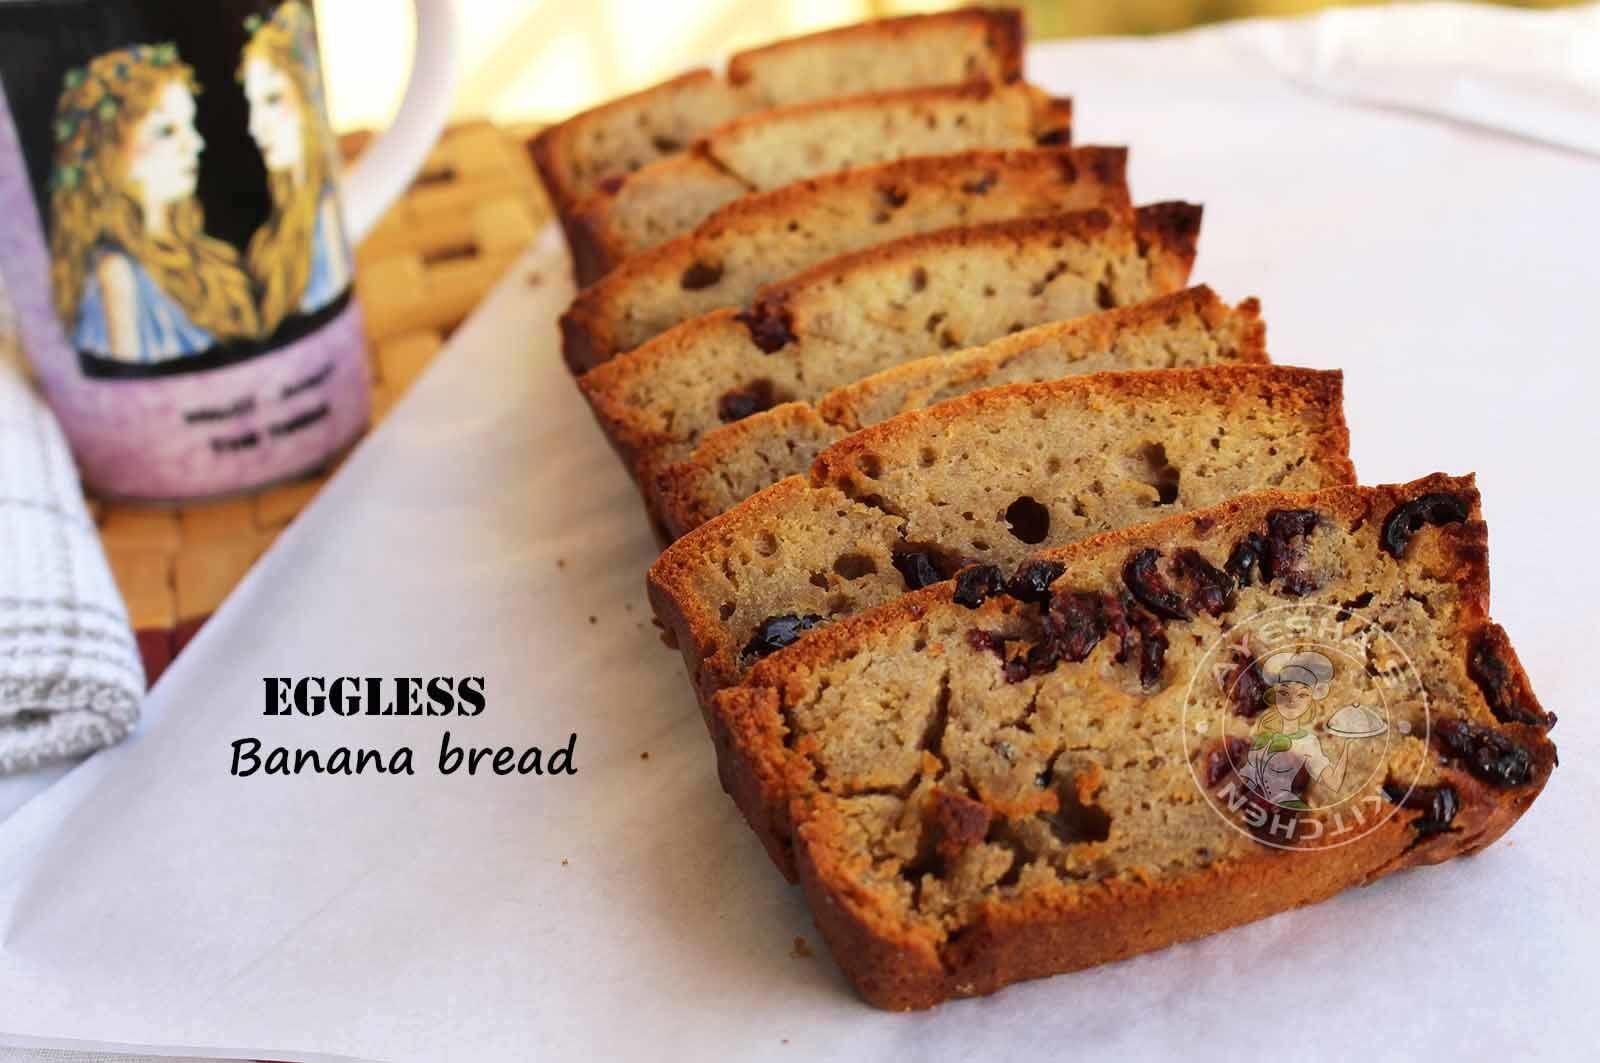 EGGLESS CAKE RECIPES - EGGLESS BANANA BREAD